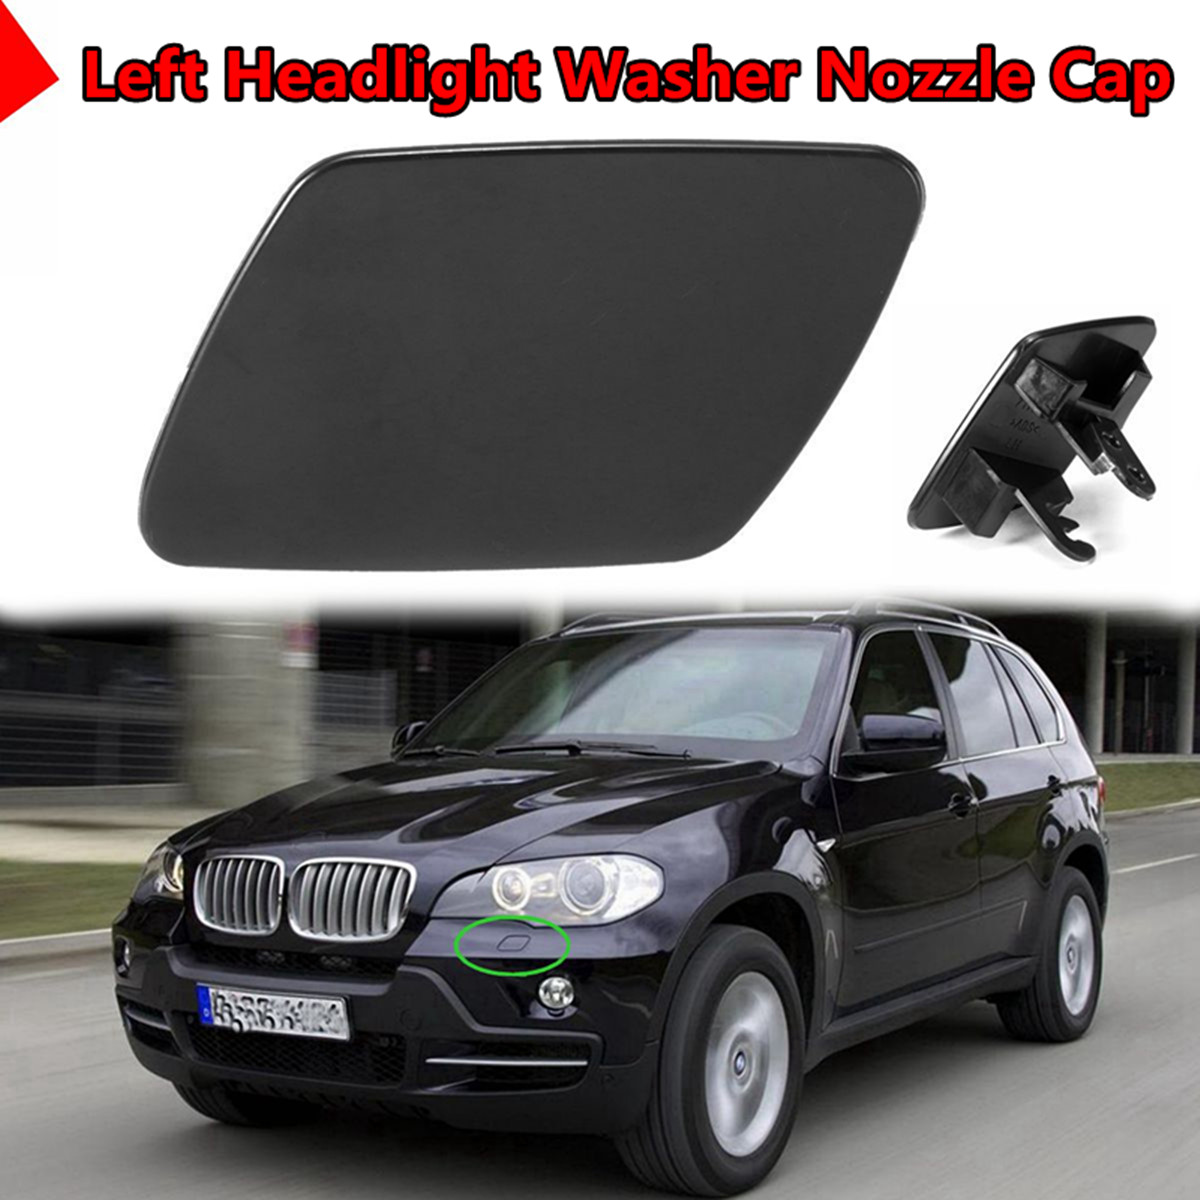 Front Headlight Washer Nozzle Cover Cap Assemly For 2007-2008 X5 3.0si 6Cyl 3.0L